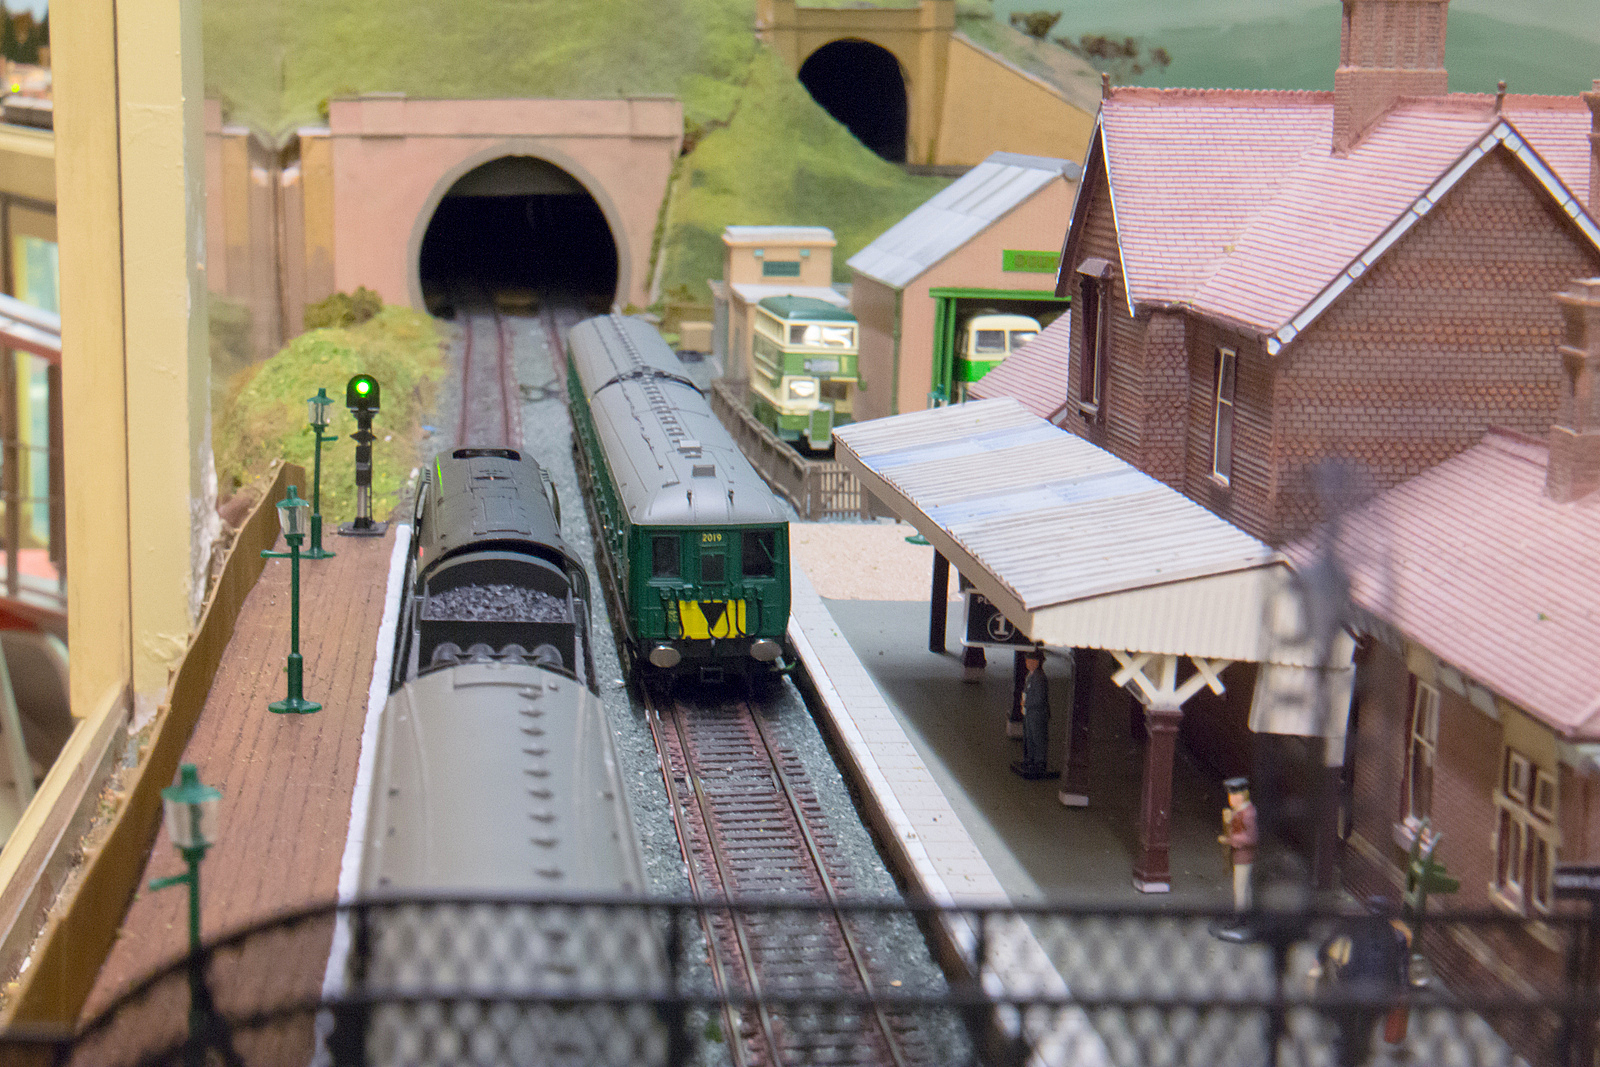 Category East Sussex Countryside Model Railway Layout